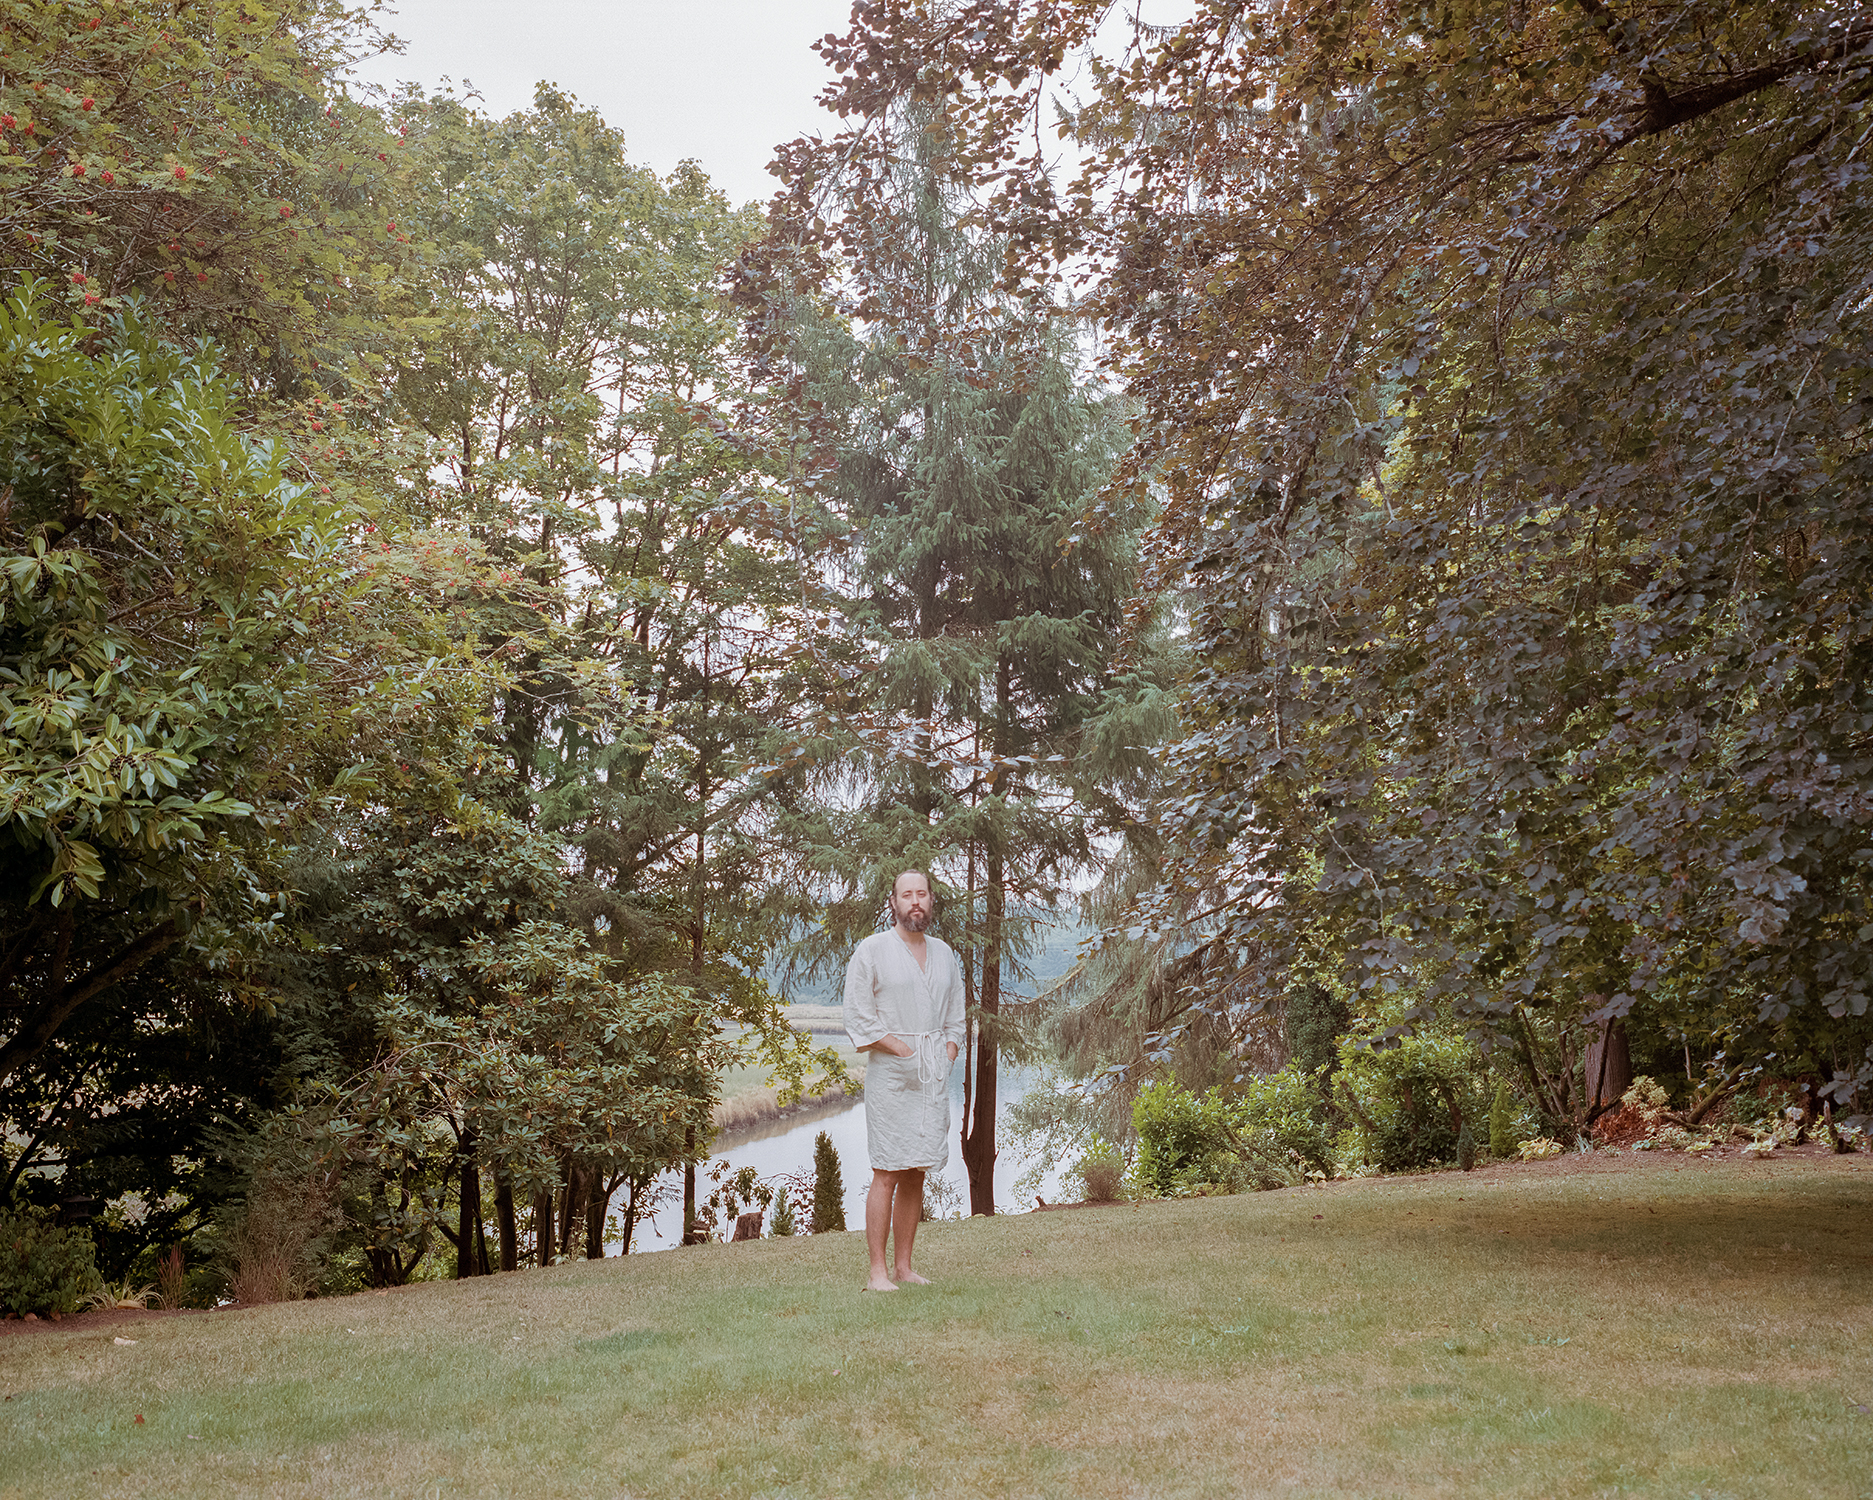 Chris in his robe by the Willipa River - September 2018